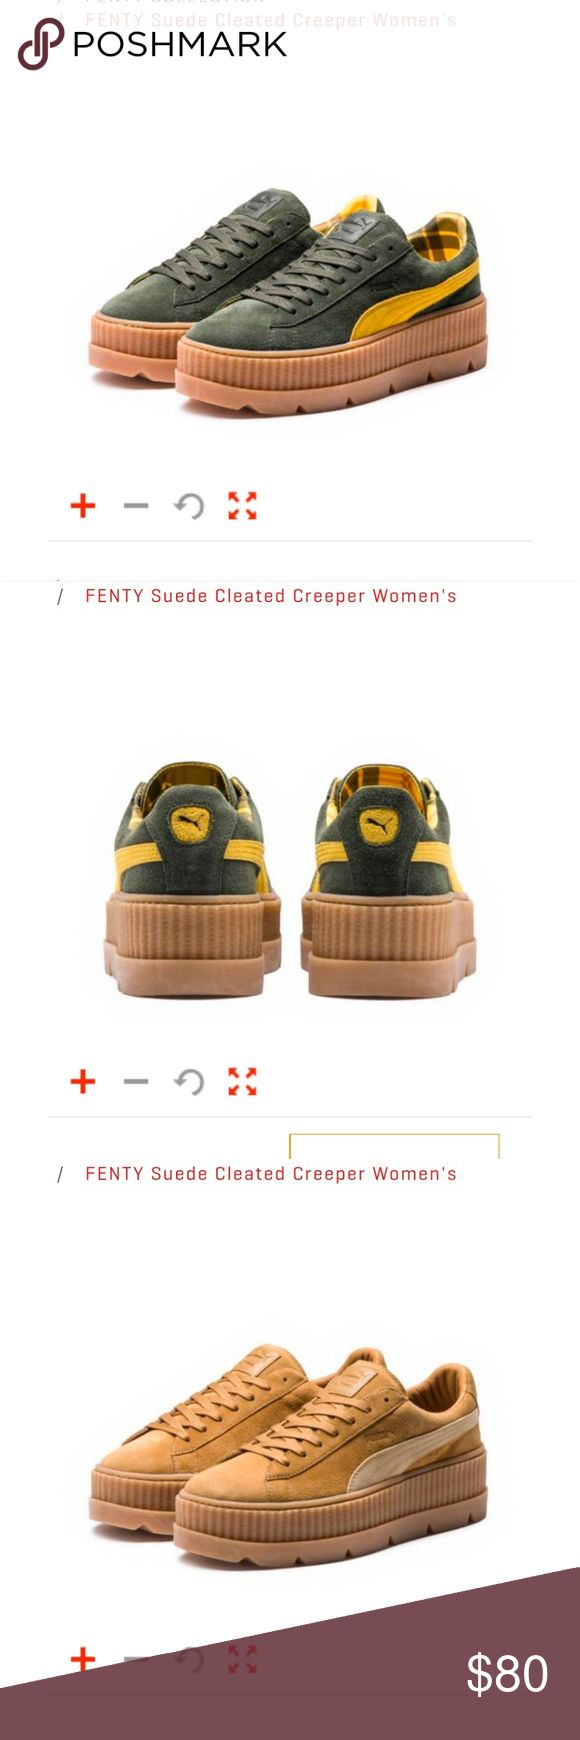 Puma Fenty Suede Cleated Creeper -New With Tag -Hundred Percent Authentic, buying directly from Puma private sale -Comment below the color you want and size and I will let you know if available  -I also have other fenty products as well. Comment so I can check. Puma Shoes Sneakers